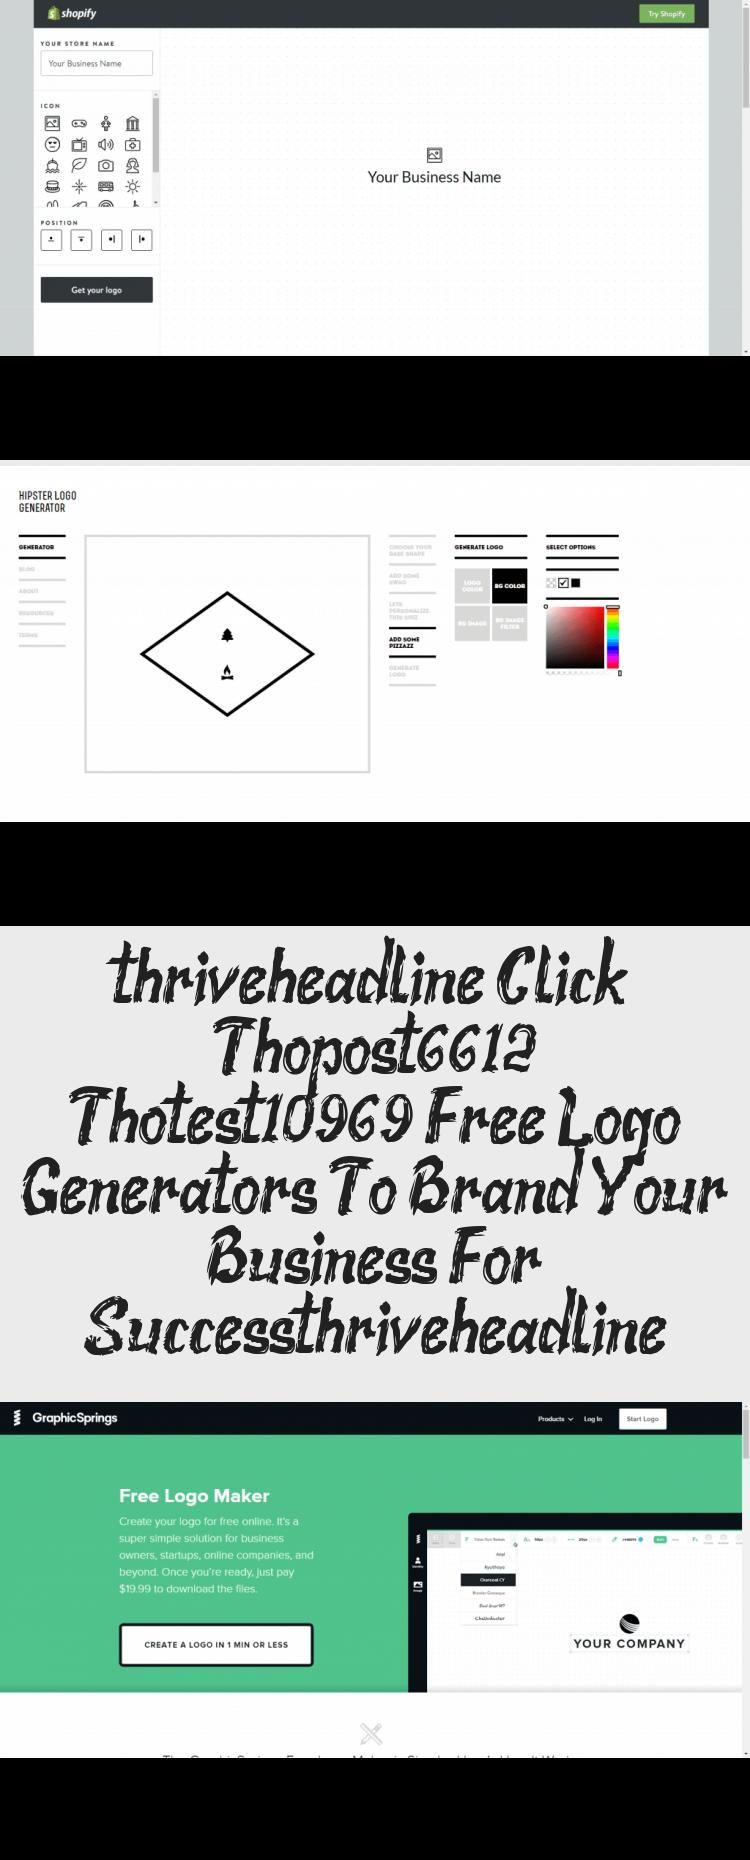 9 Free Logo Generators To Brand Your Business For Success